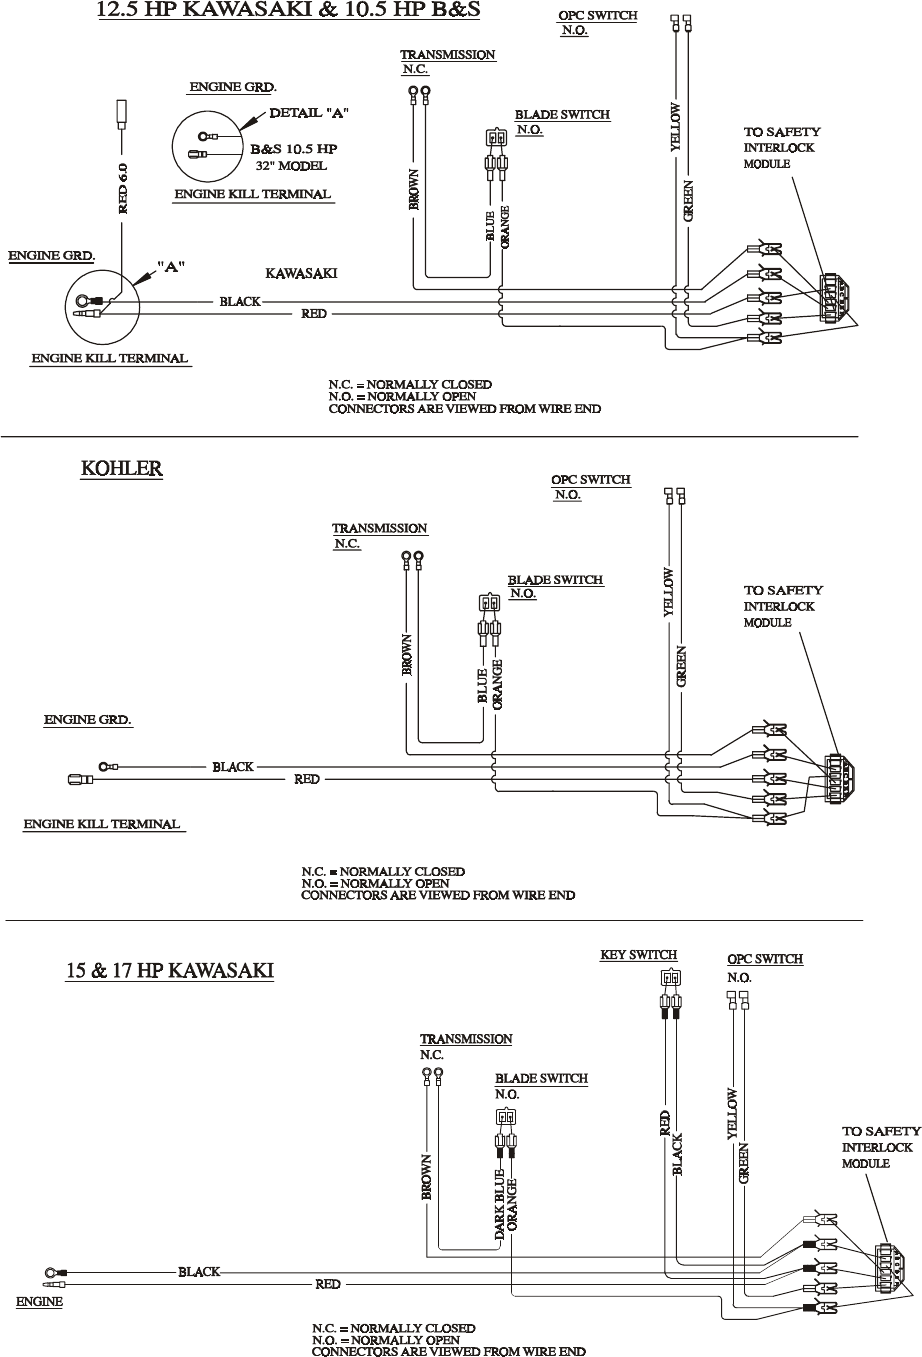 fa869892 6c99 4c24 afcd a612459af1d0 bg27 page 39 of exmark lawn mower metro user guide manualsonline com exmark wiring diagram at bayanpartner.co